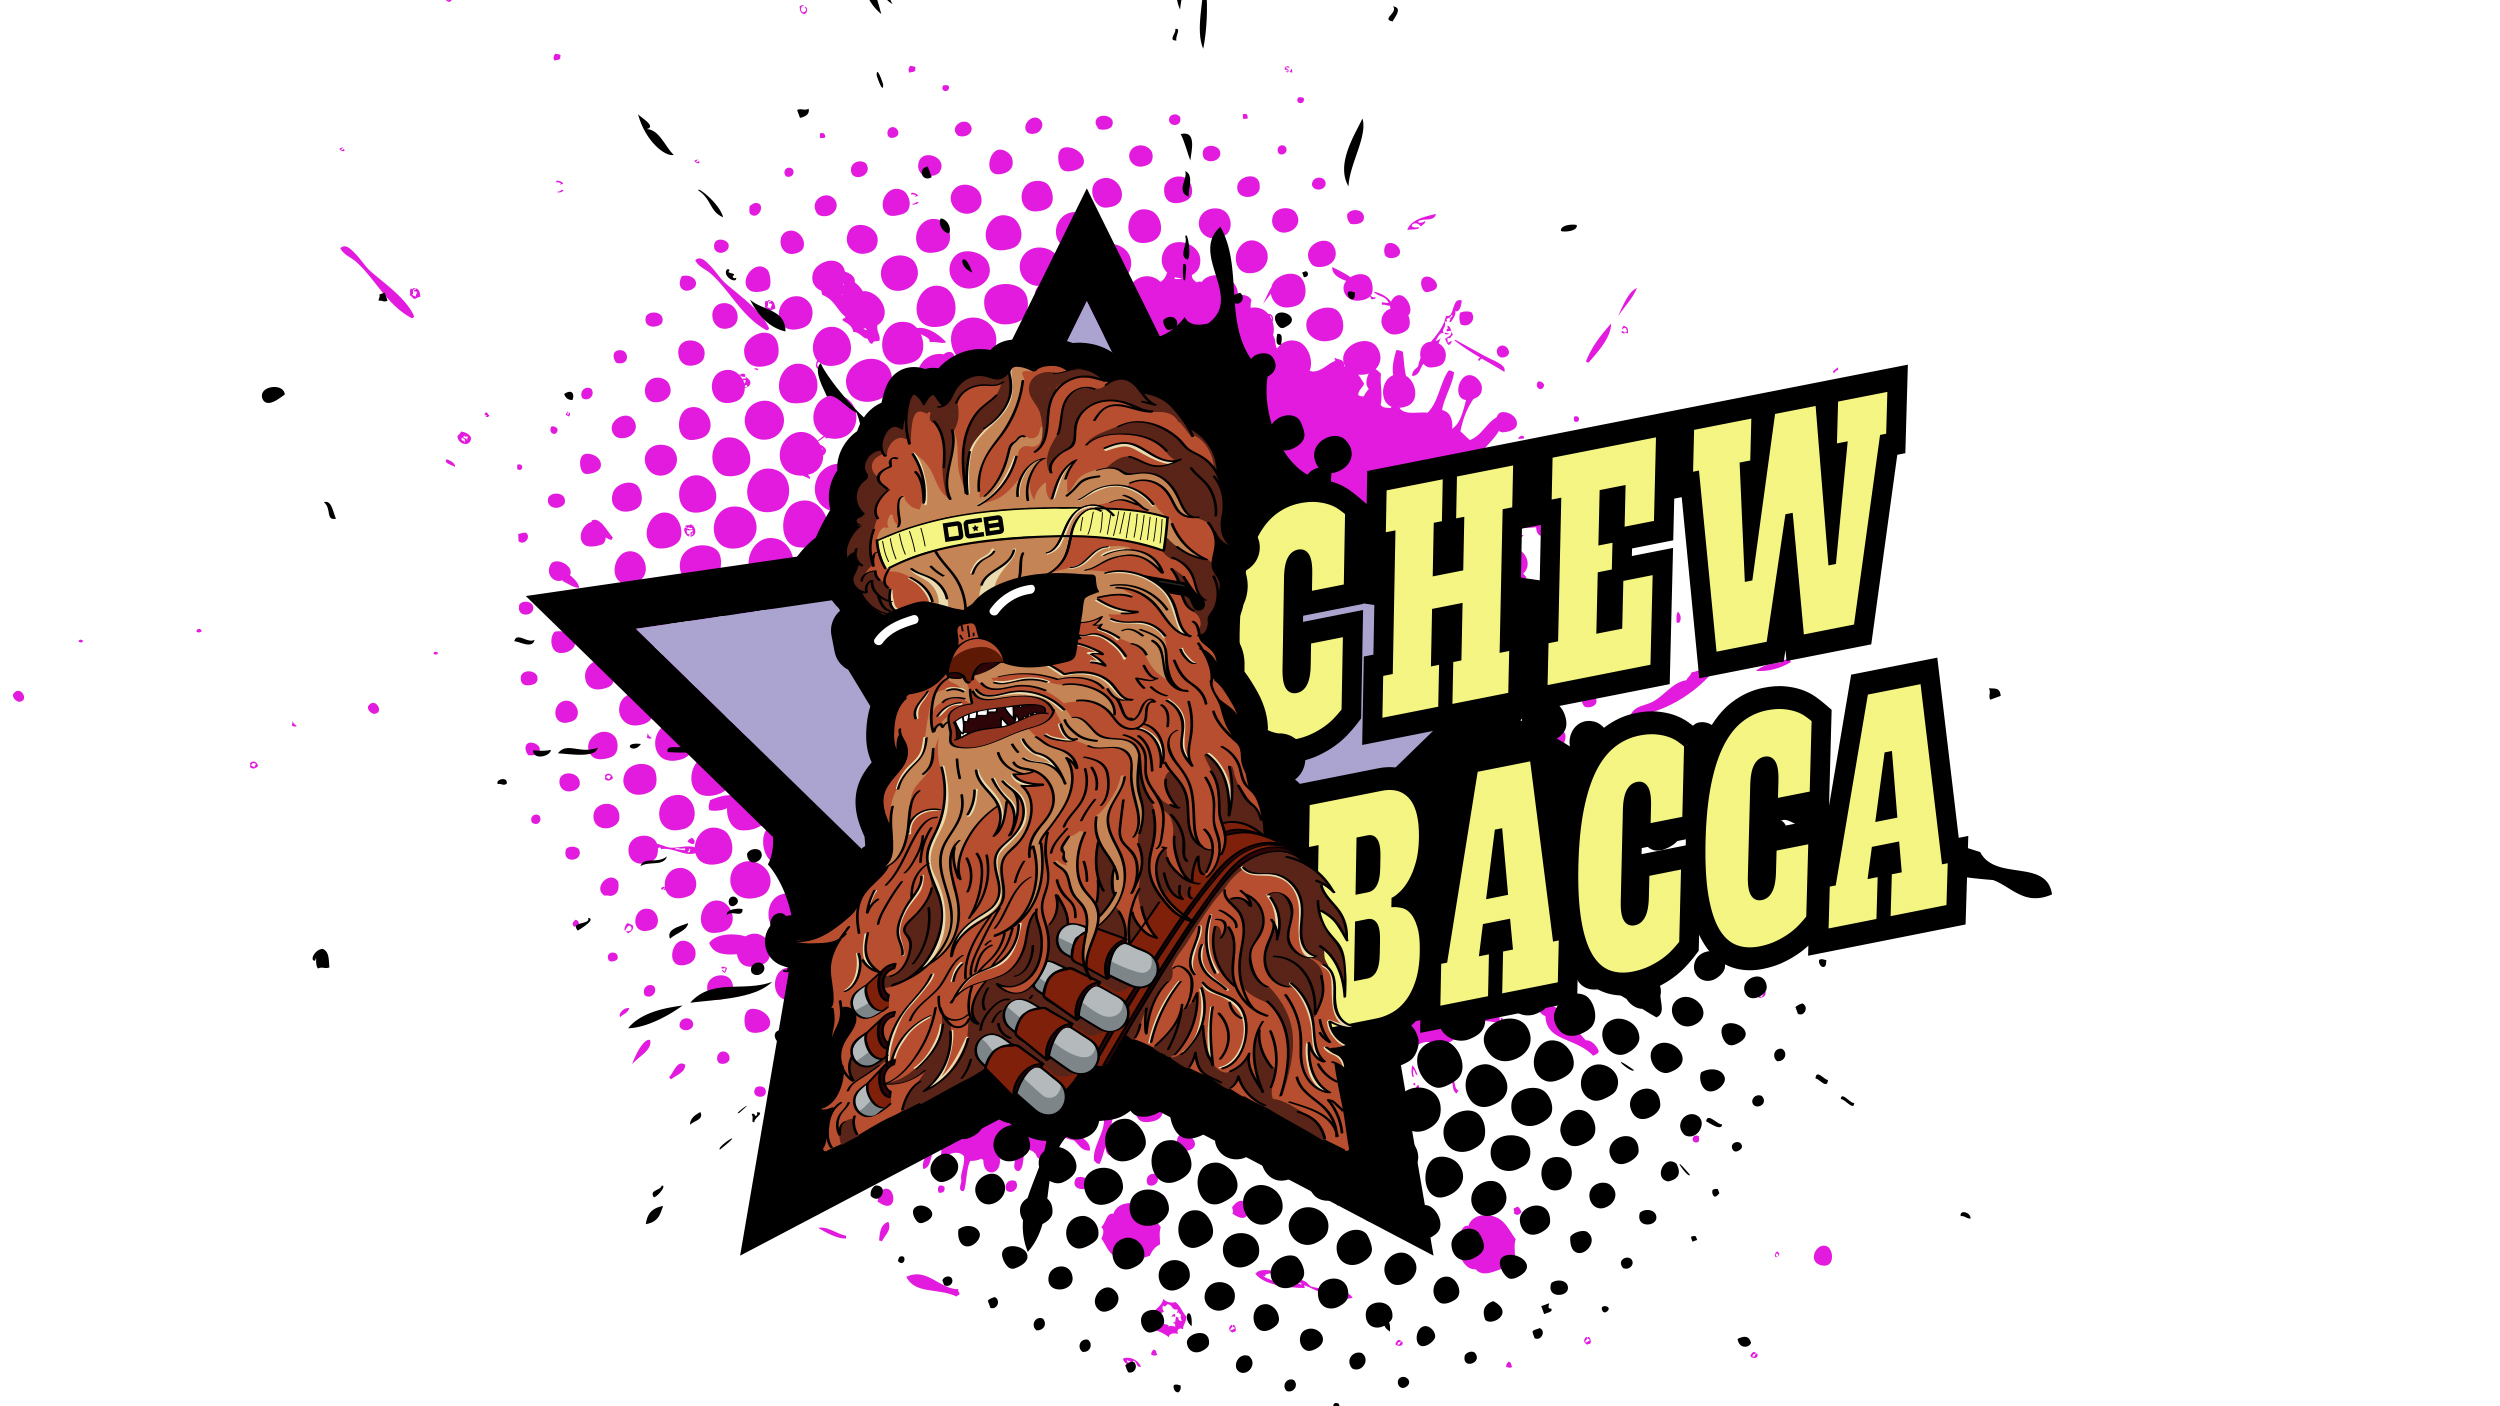 Chewbacca  Copyright © Afro Boy Productions. All rights reserved. ·  Illustrator